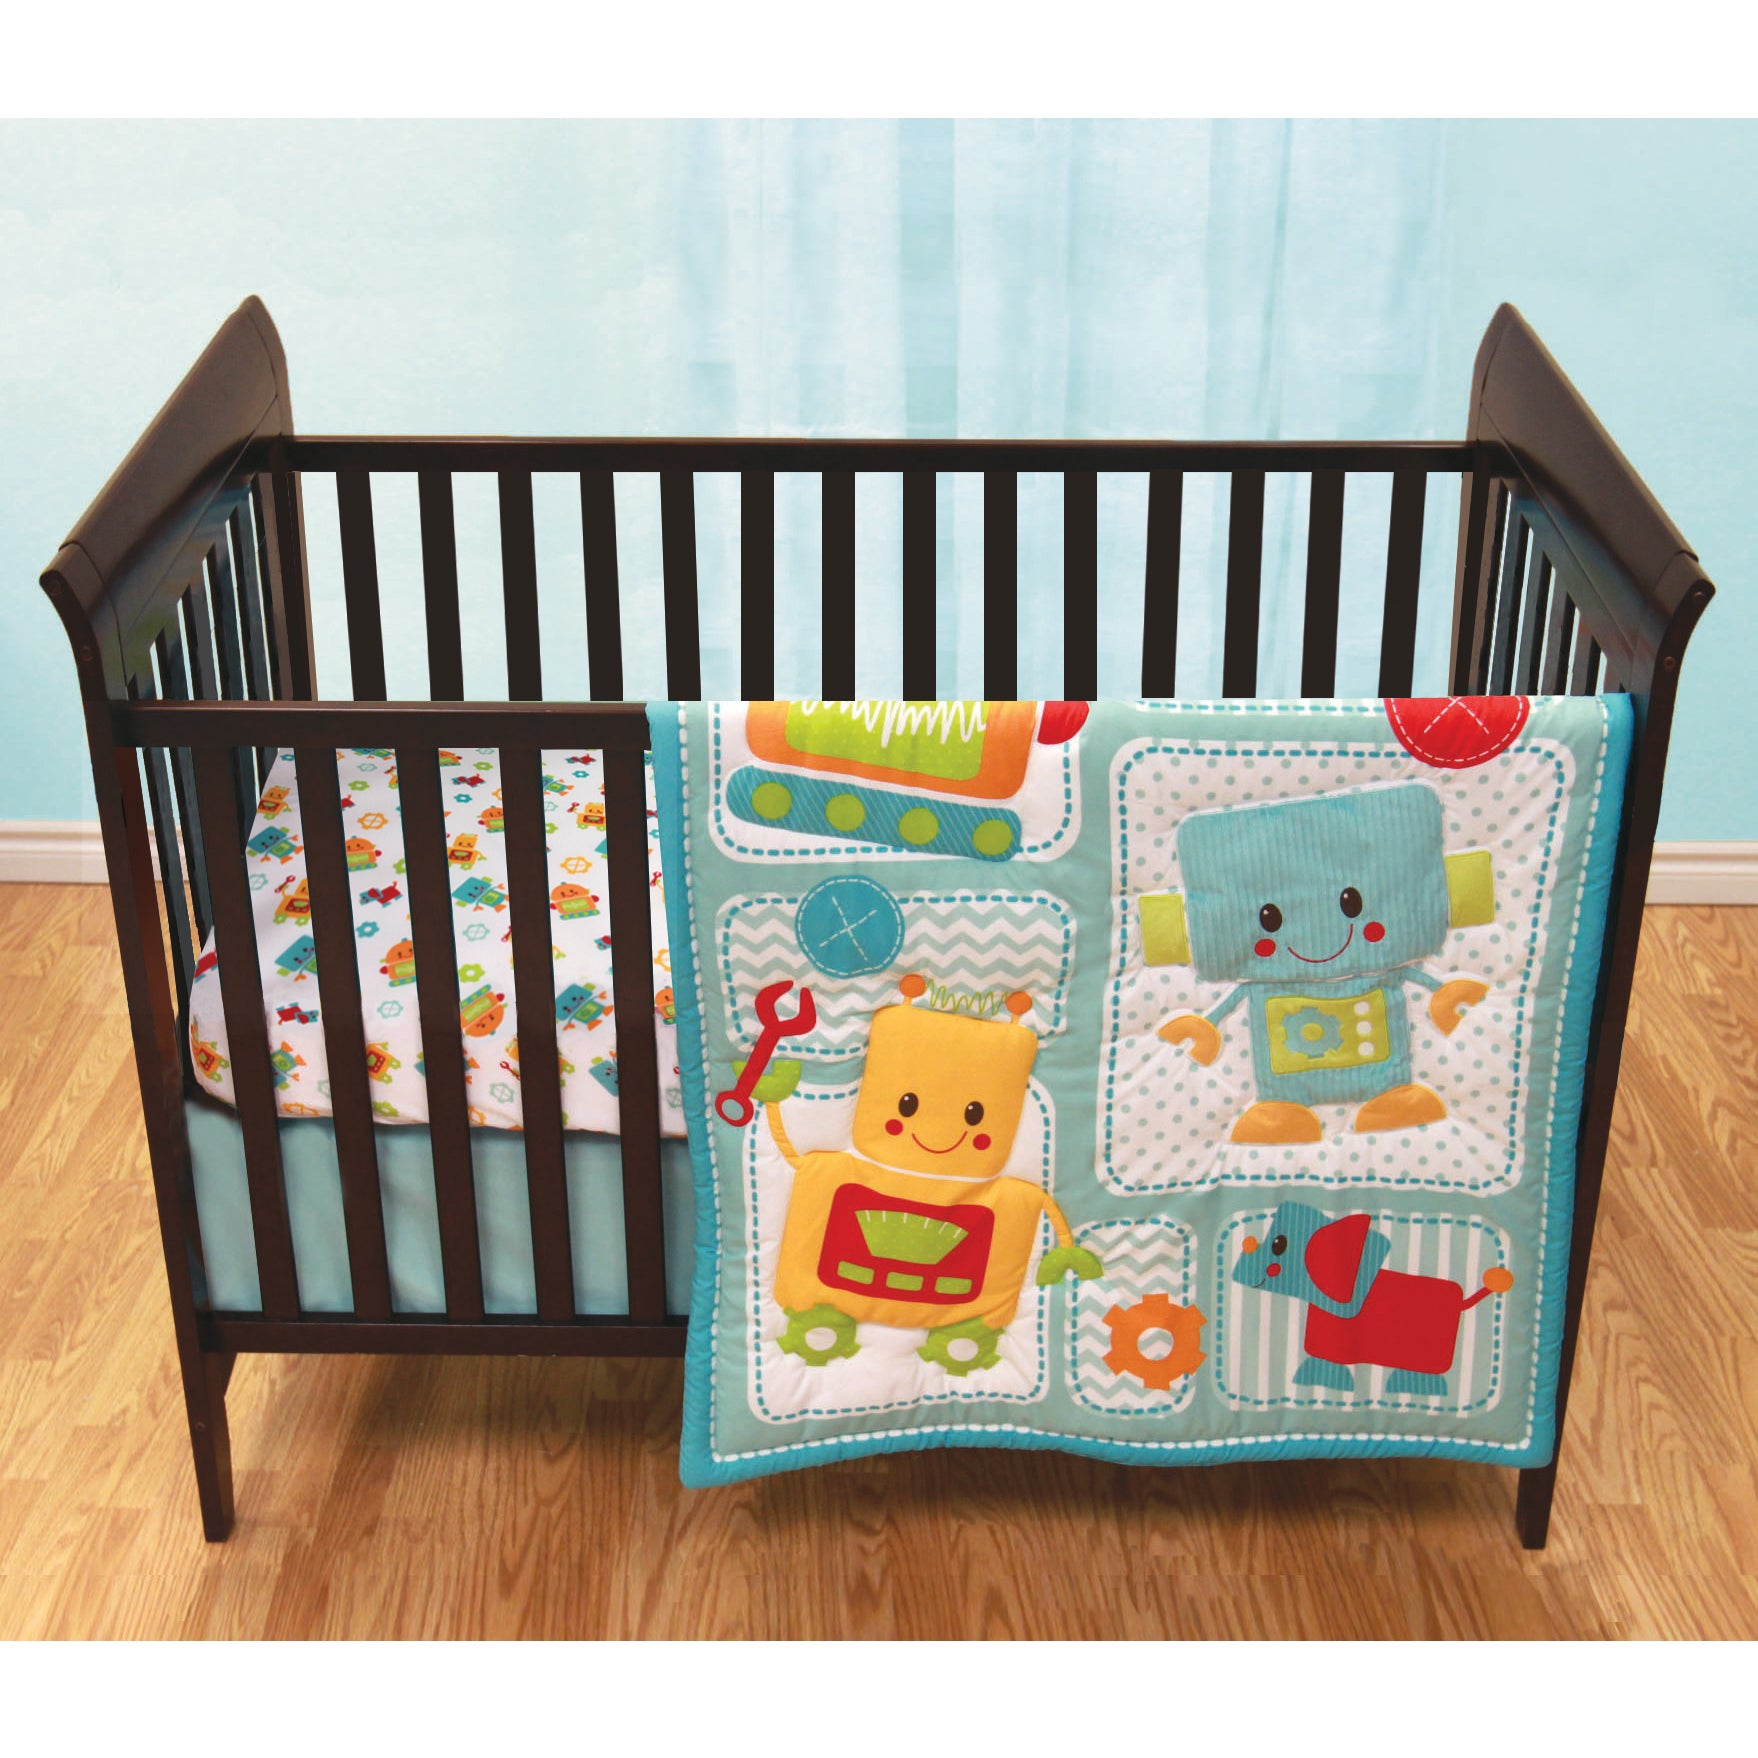 Baby's First Peek-A-Bot Multicolored 3-piece Crib Bedding...